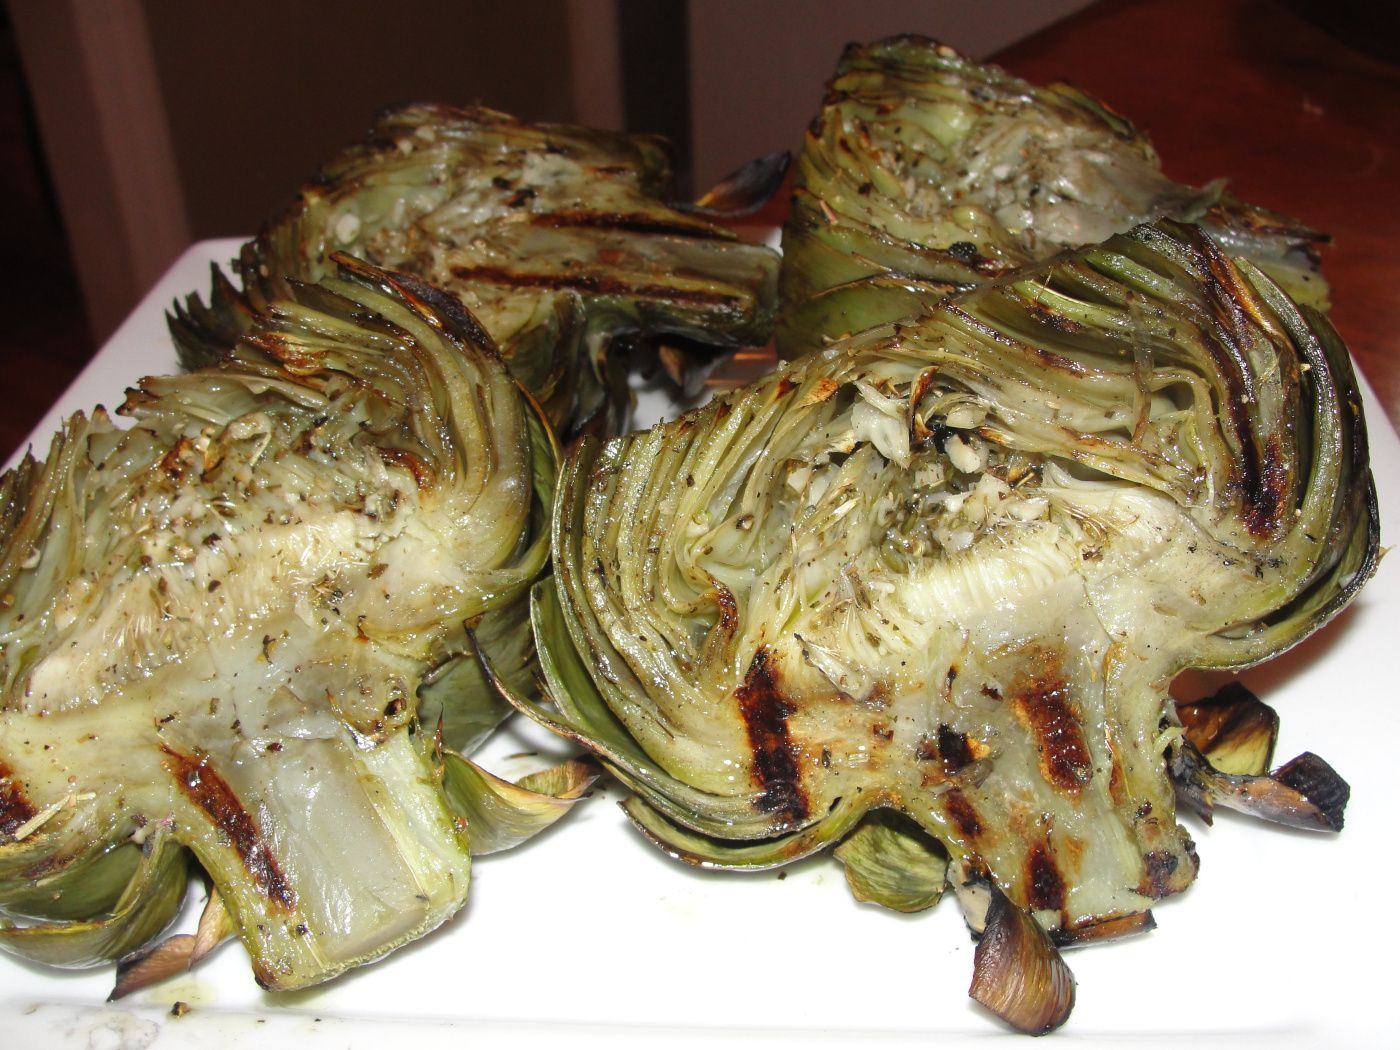 Grilled artichoke recipe dinner side tonight for d to for Swai fish recipes food network